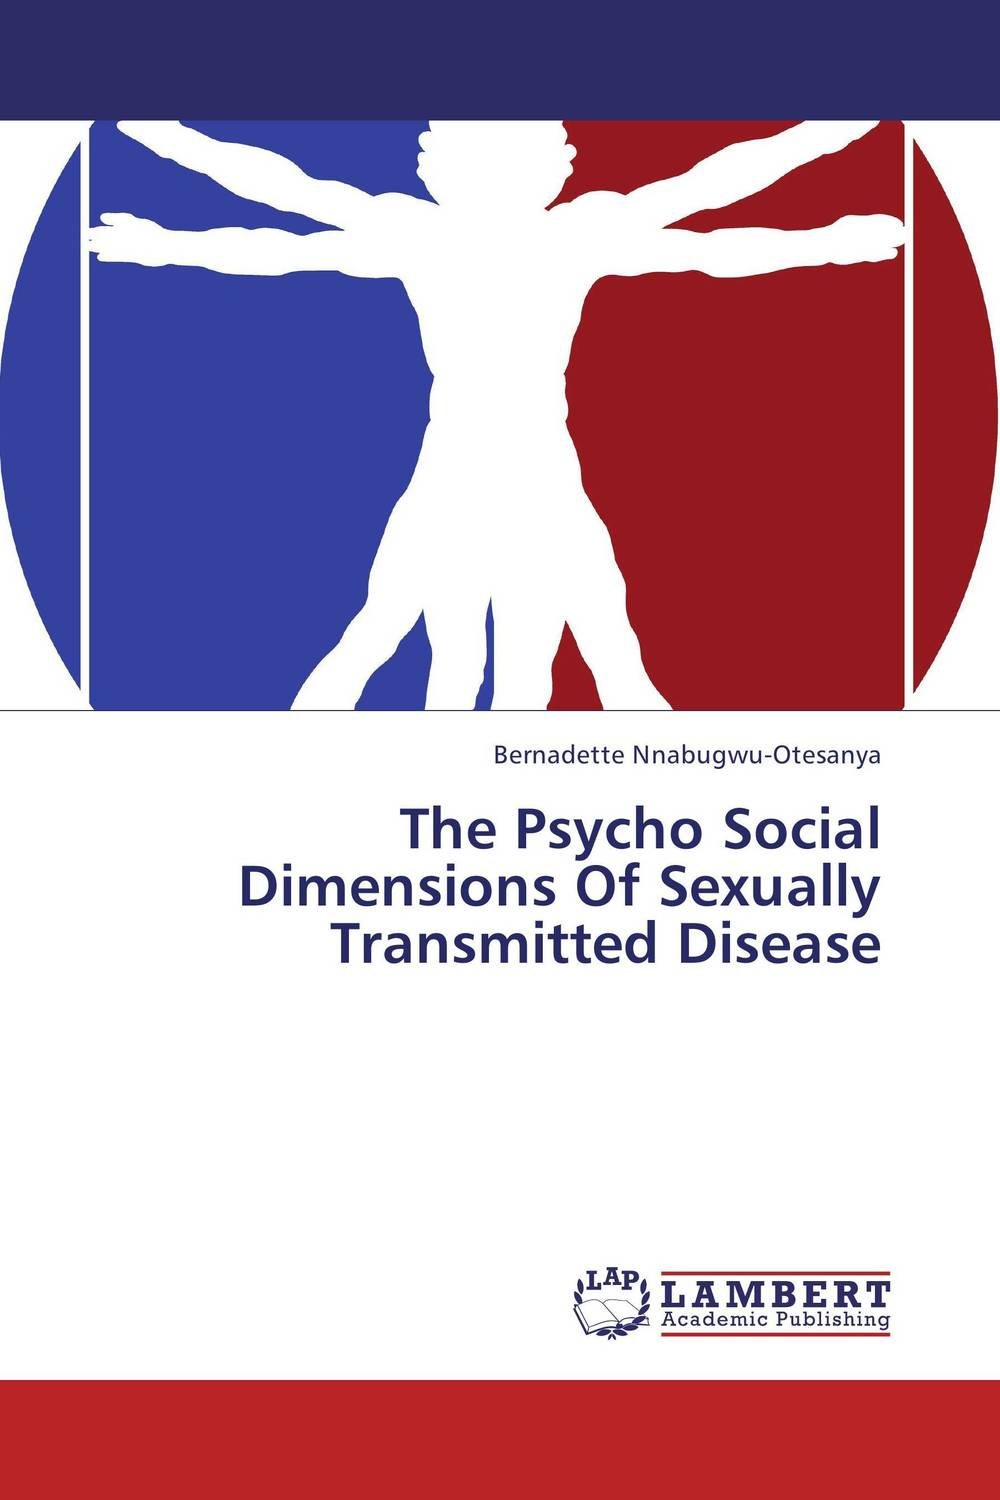 купить The Psycho Social Dimensions Of Sexually Transmitted Disease недорого